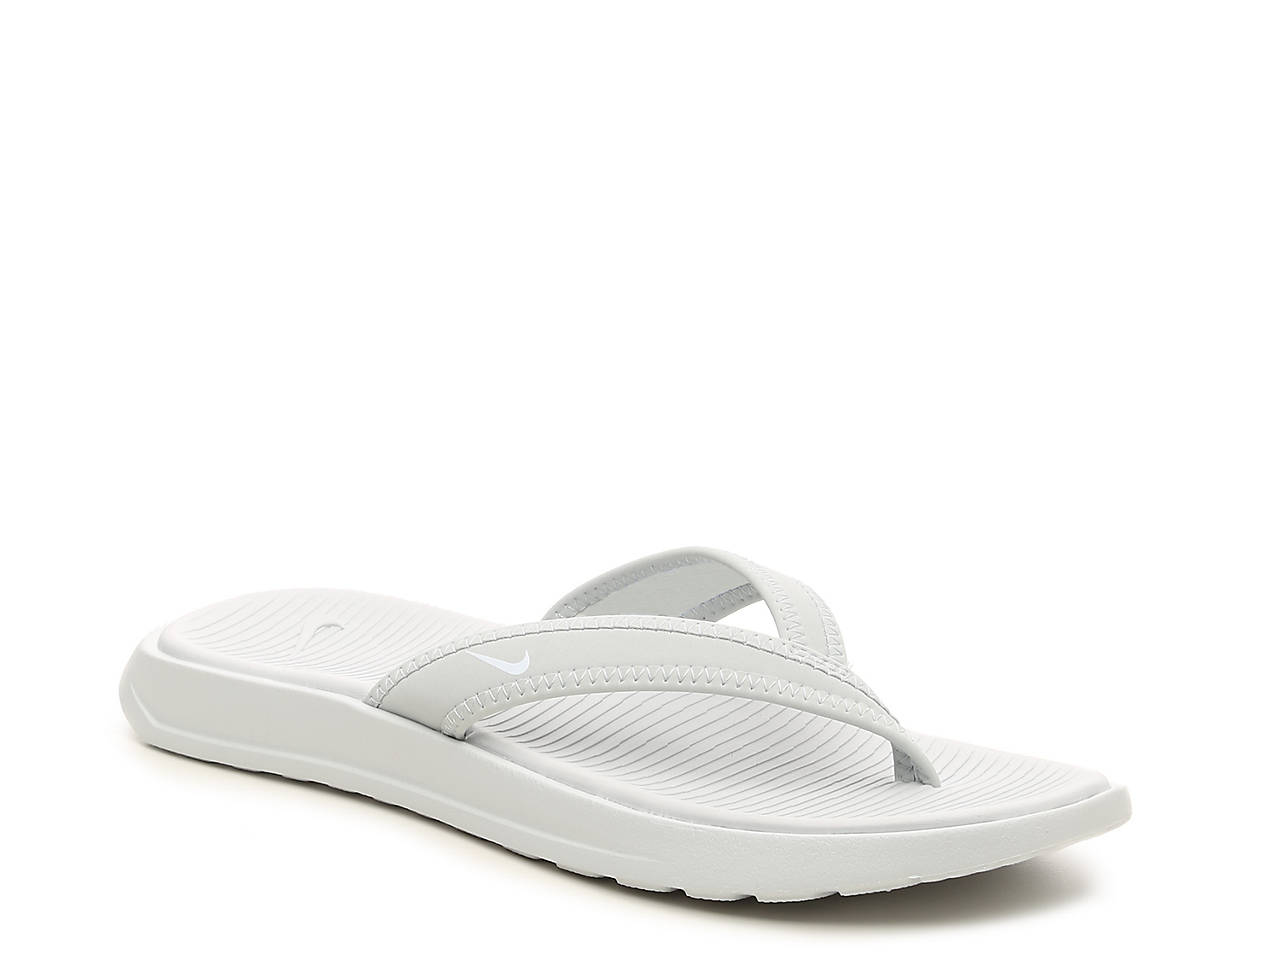 Nike Ultra Celso Flip Flop Womens Shoes  Dsw-2523